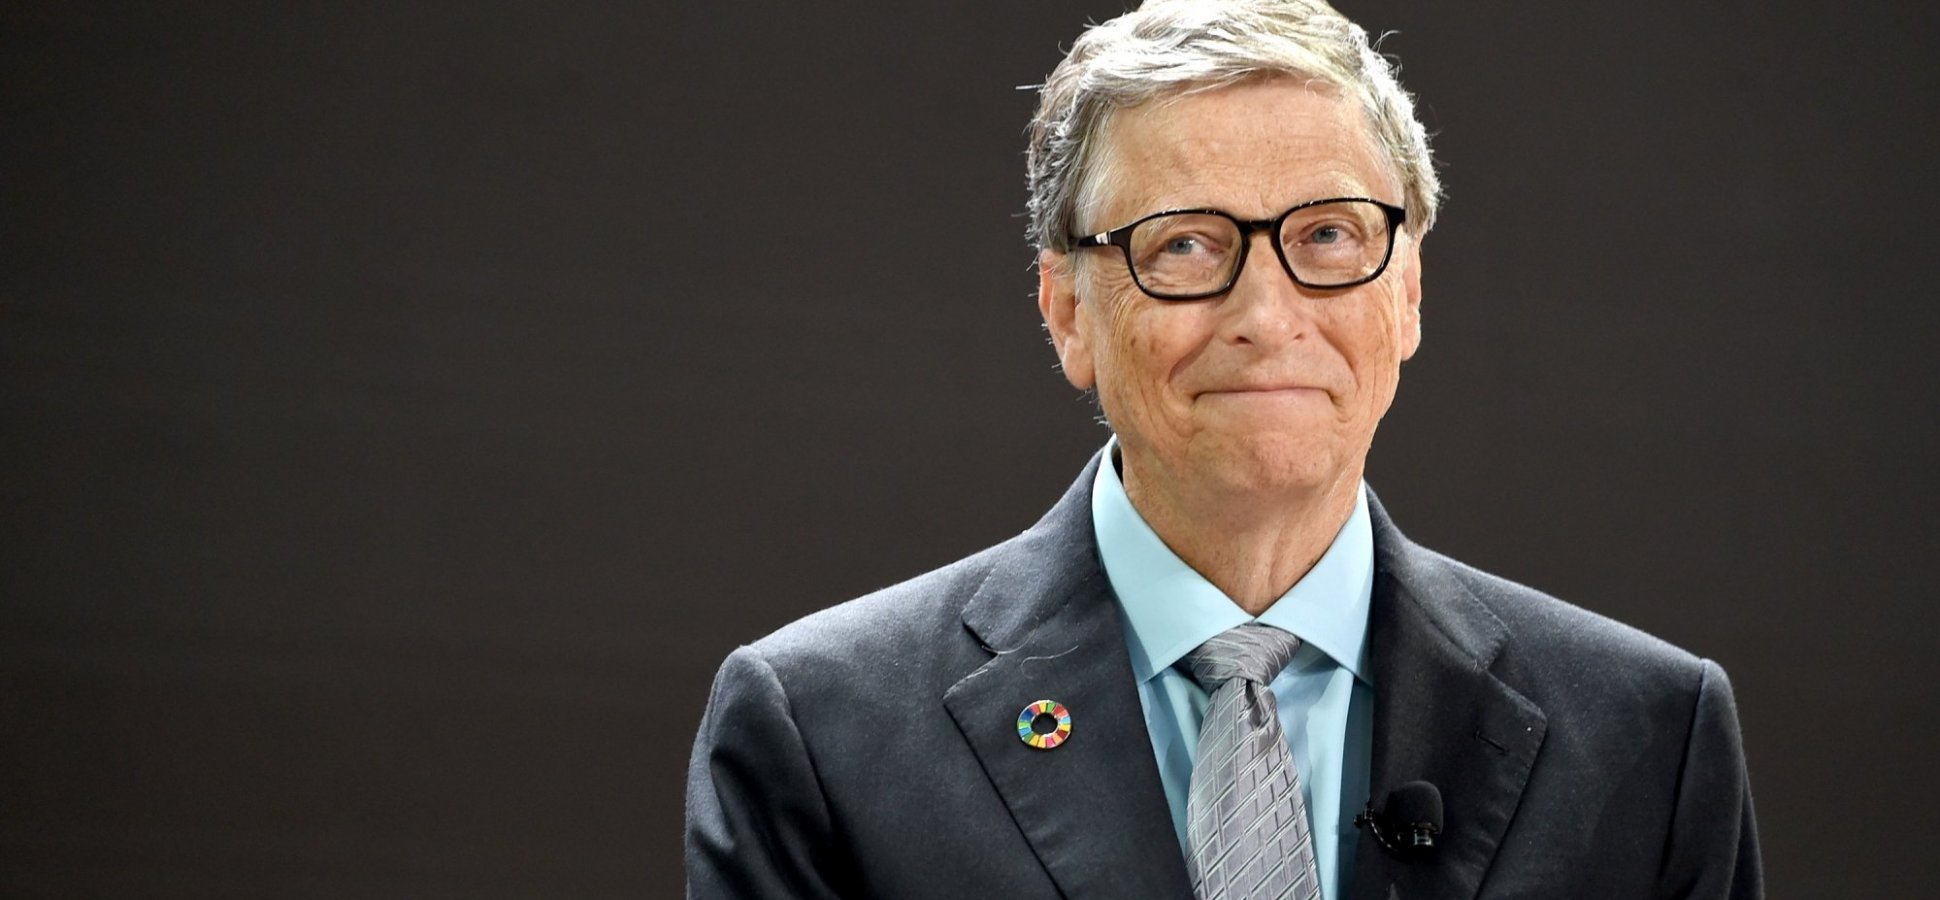 Bill Gates: A Billion Dollars Won't Make You Happy, but This Will